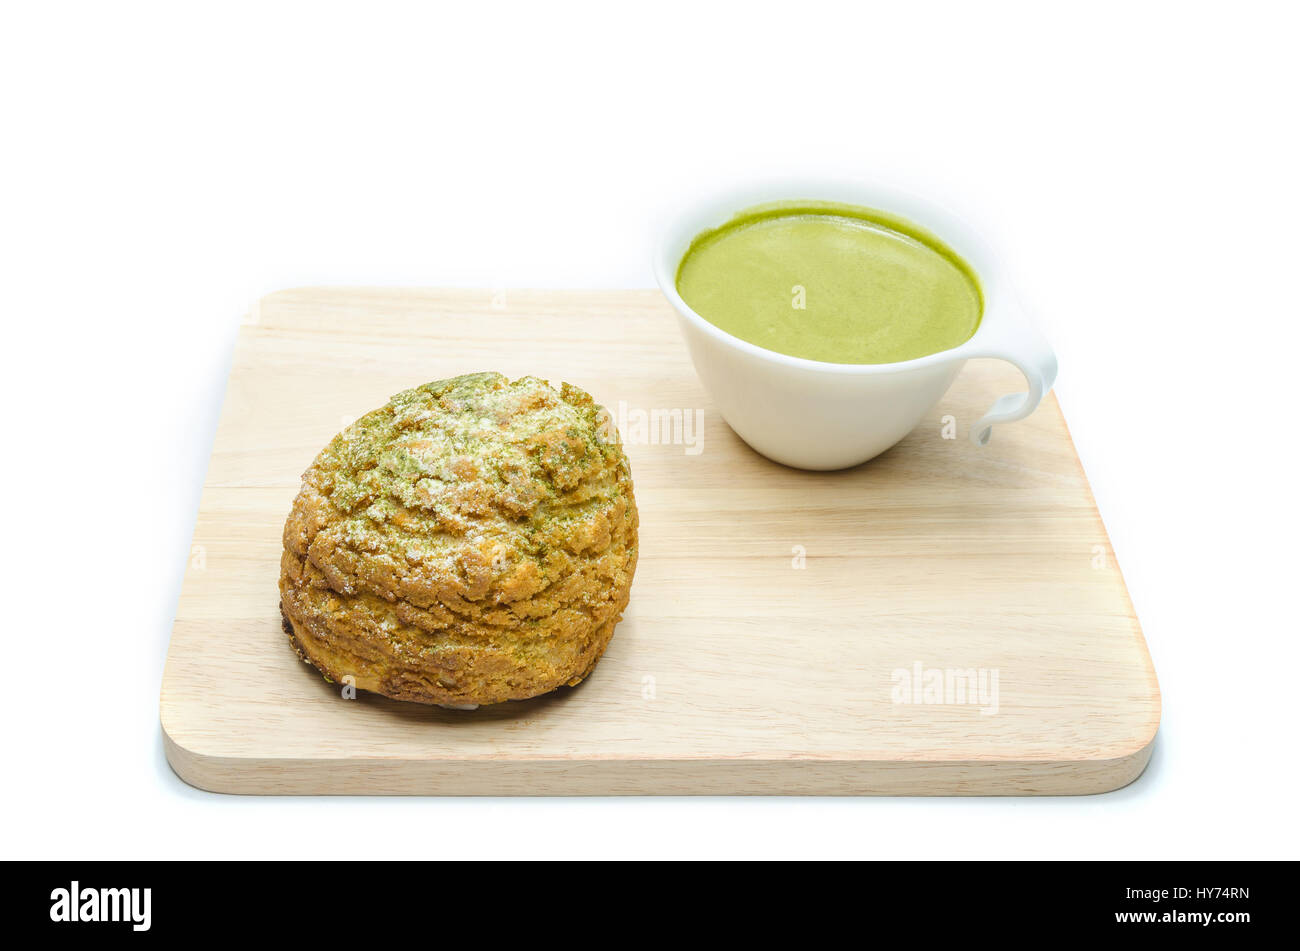 Thé vert et crème Chou isolated on white Photo Stock